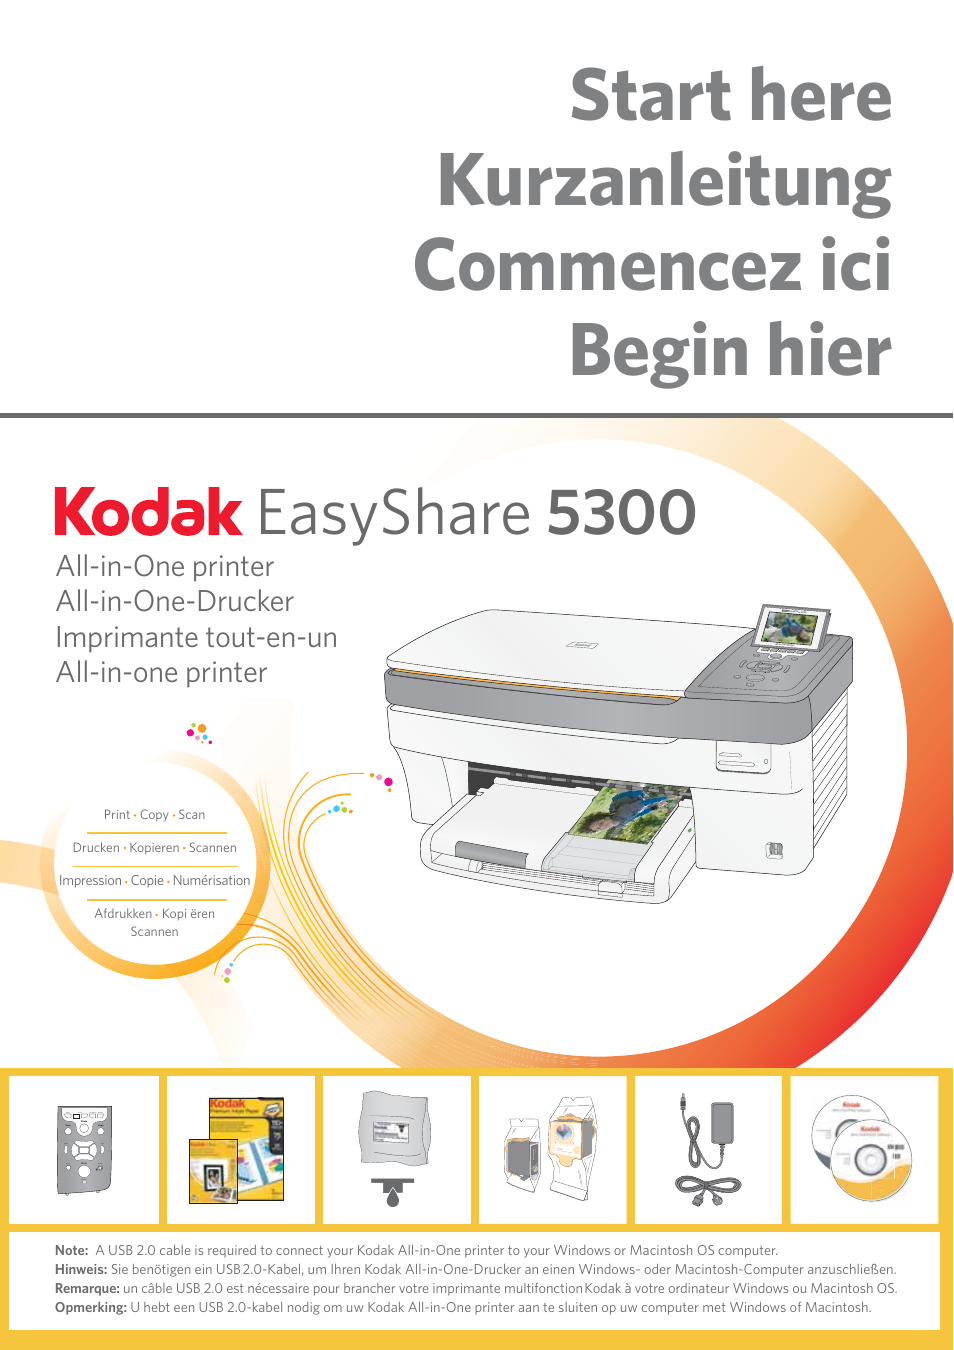 kodak easyshare 5300 user manual 28 pages also for 5300 rh manualsdir com kodak easyshare 5300 manual pdf